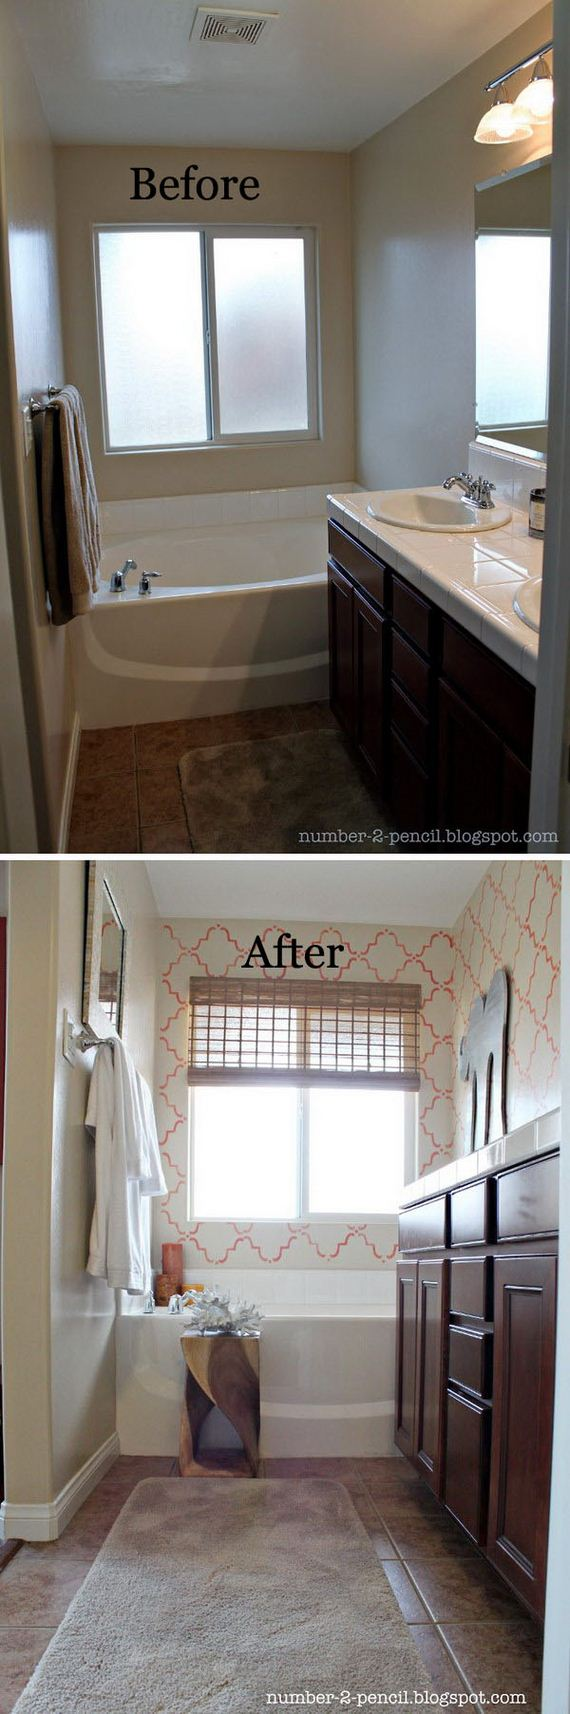 19-awesome-bathroom-makeovers